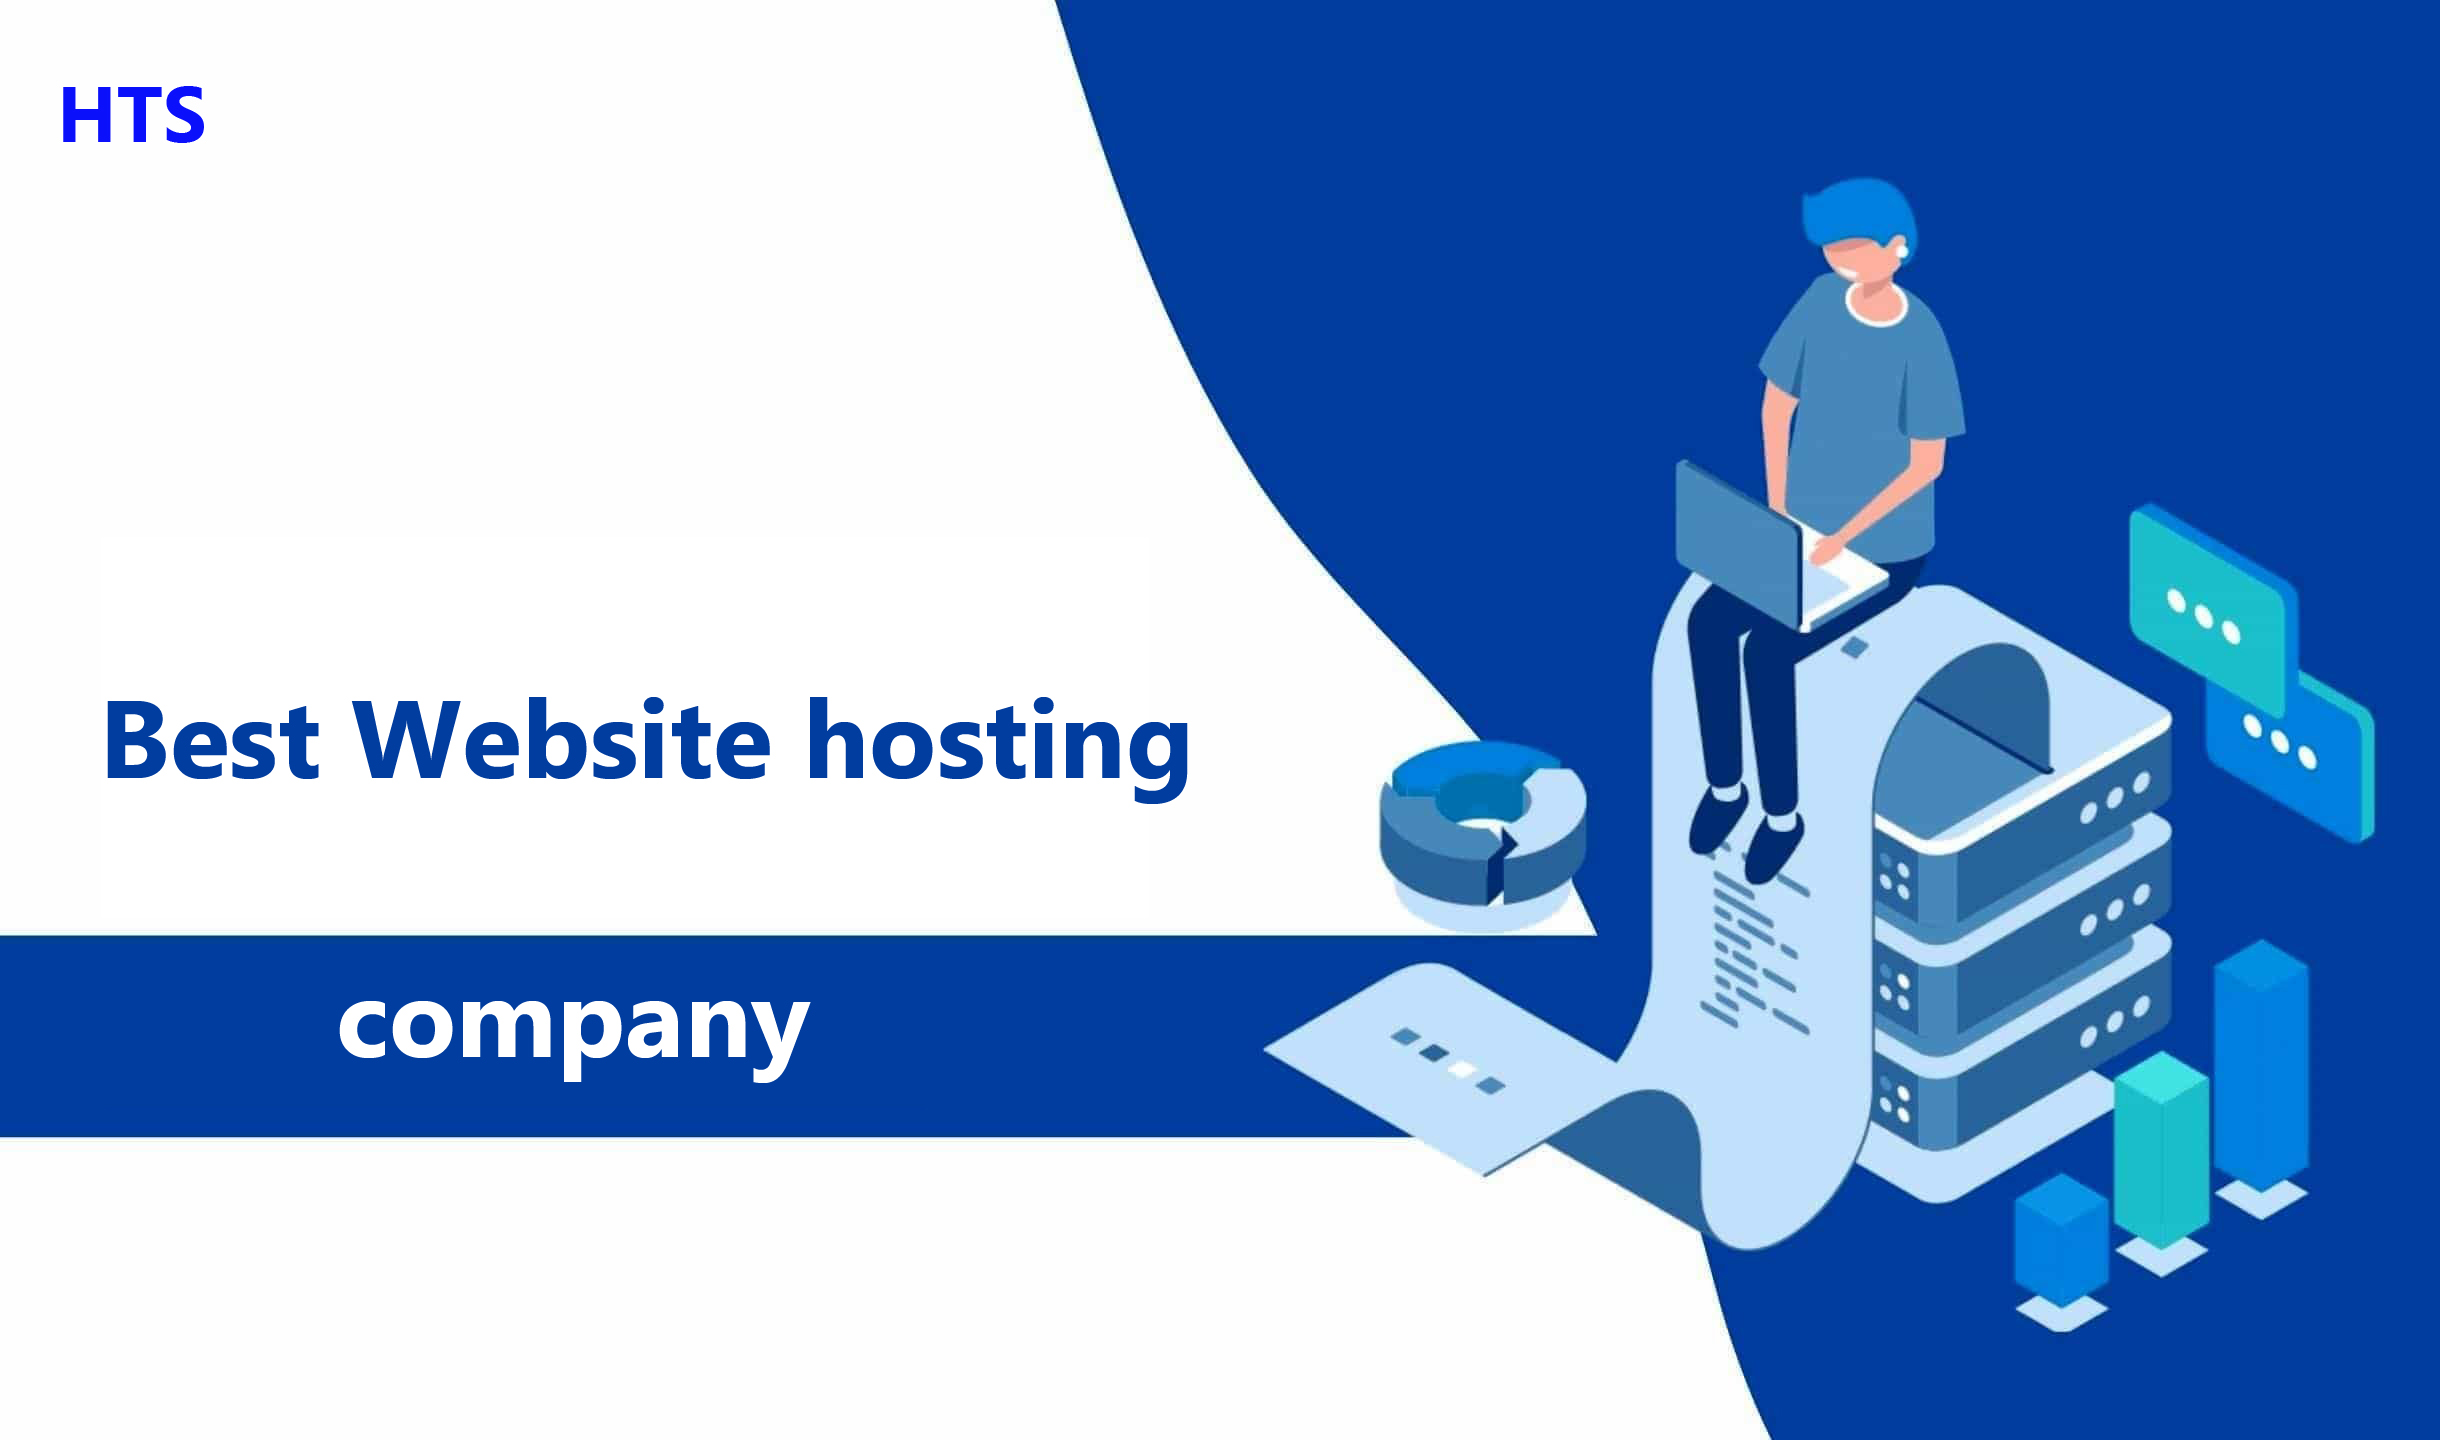 Contact HTS Hosting to know best hosting Provider